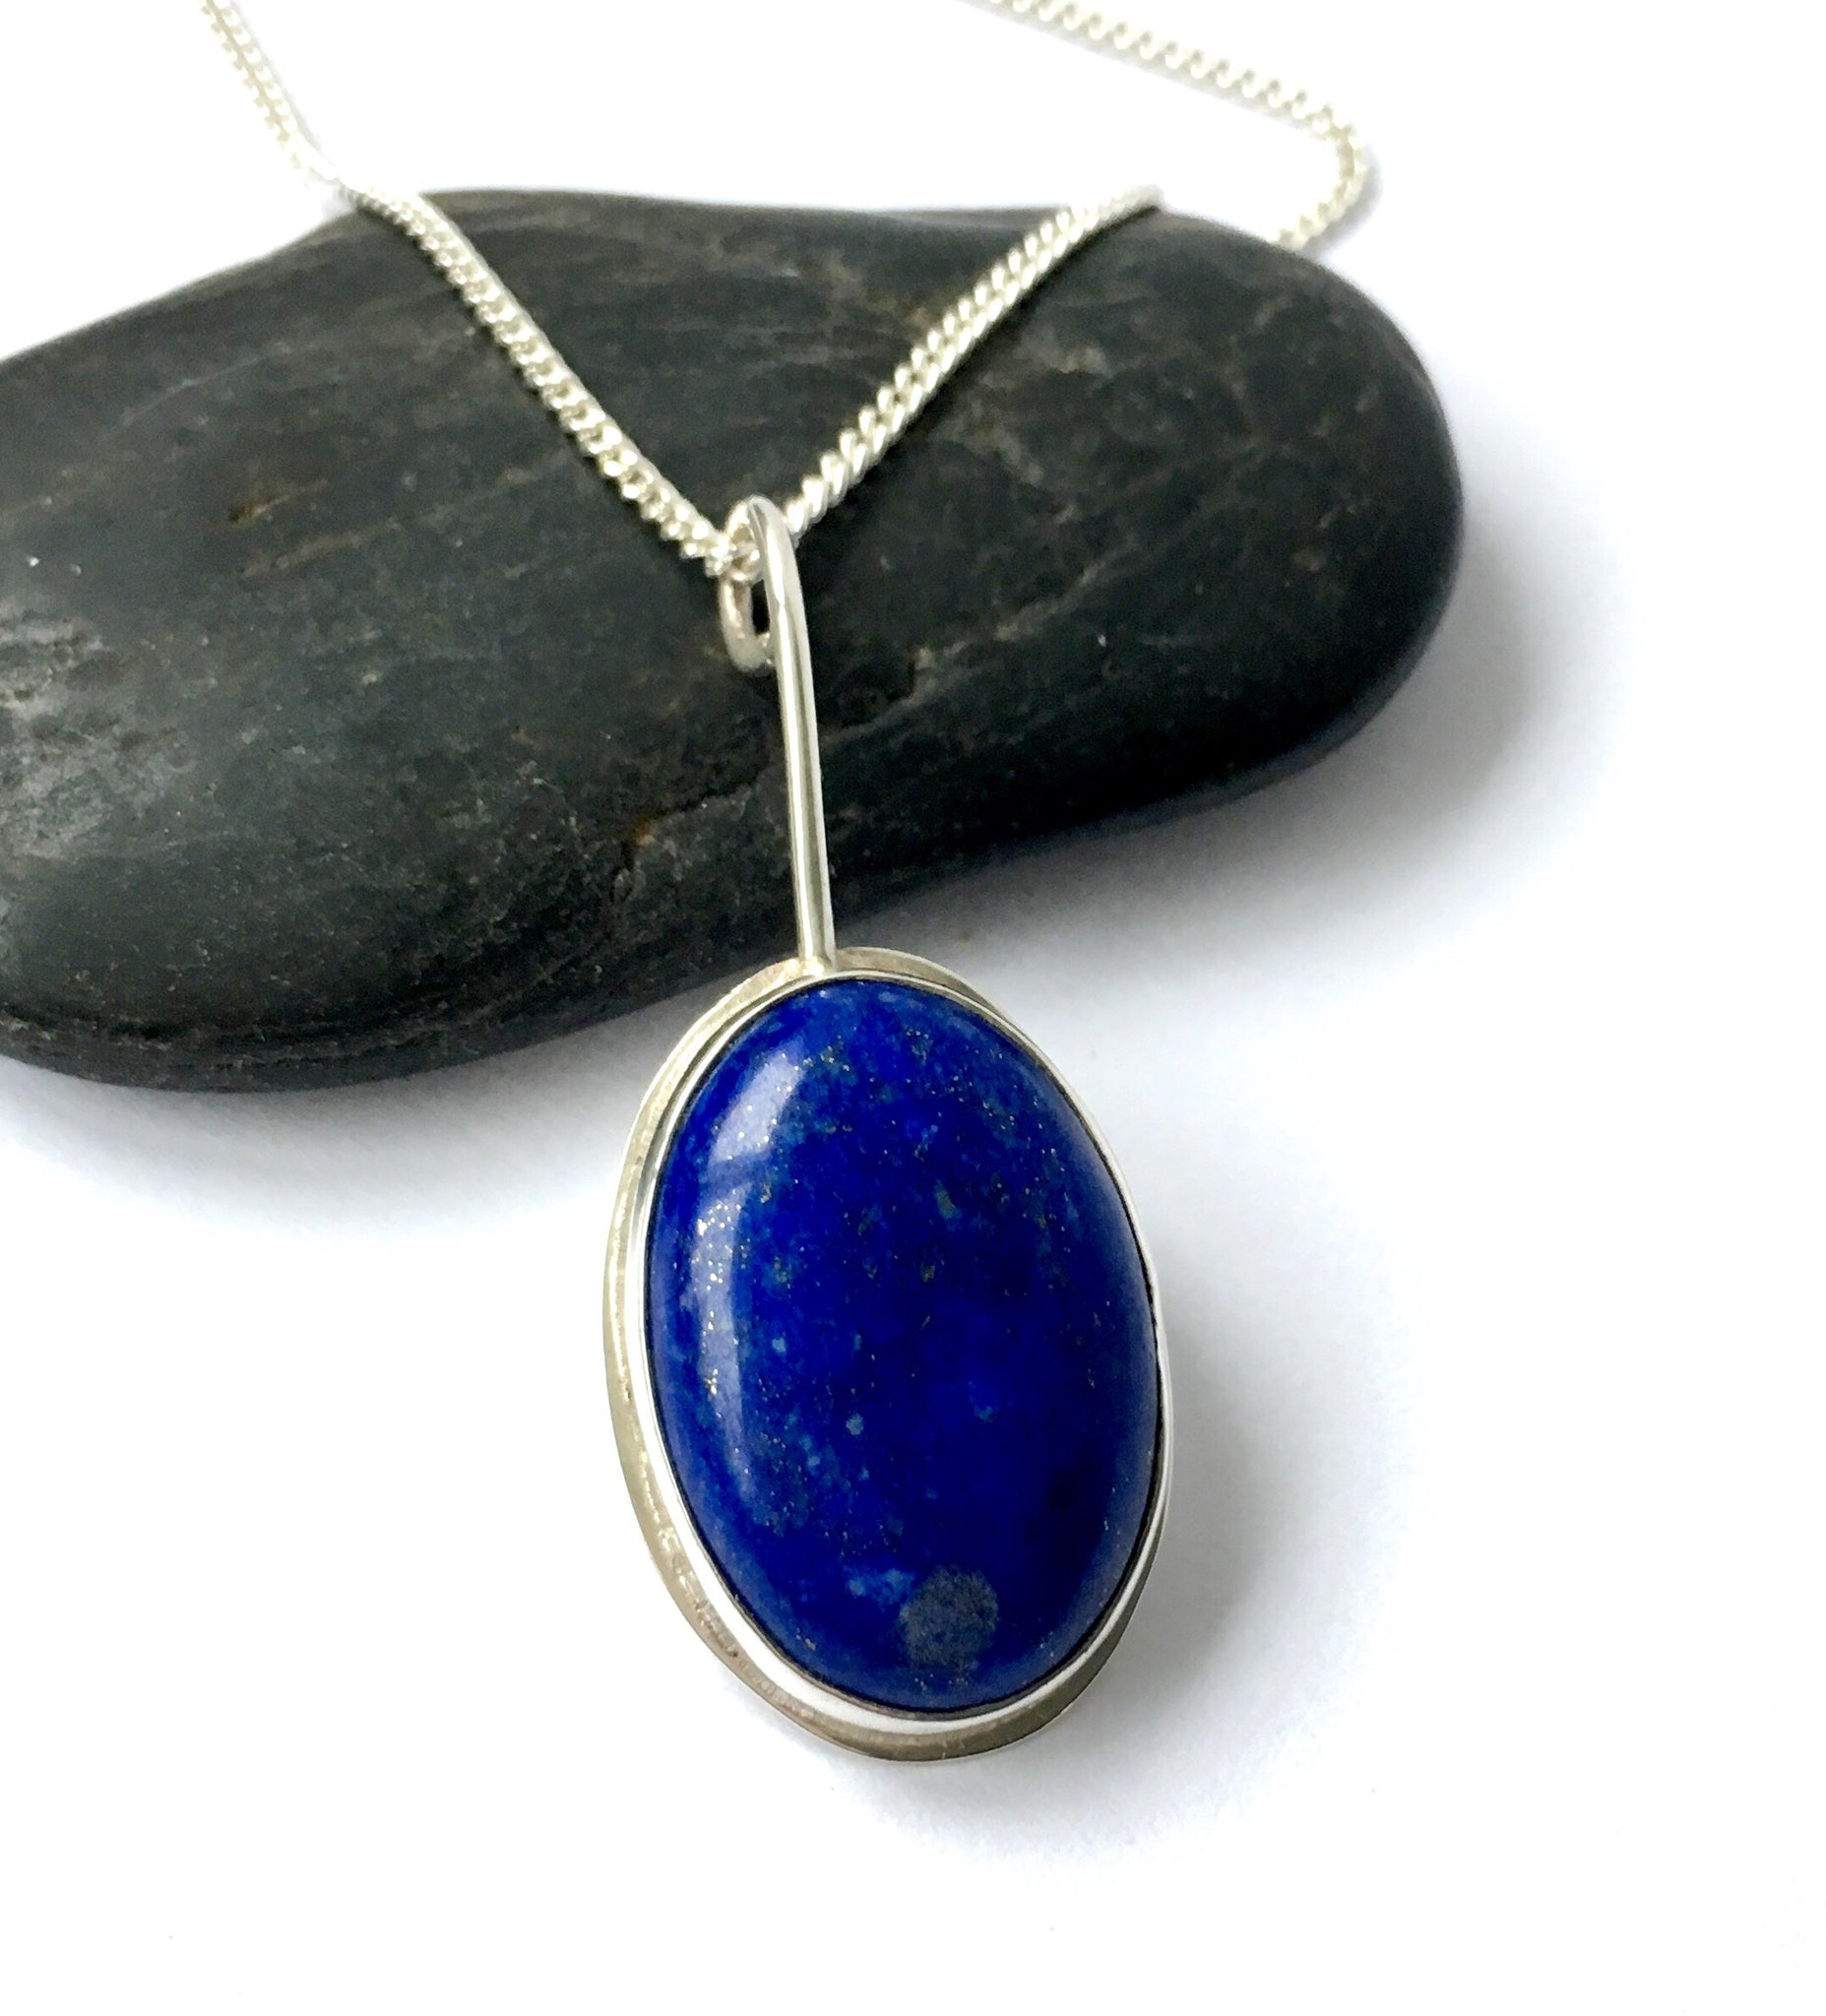 Lapis Lazuli Hand Cut in a Handmade Sterling Silver Oval Pendant Necklace. - Glitter and Gem Jewellery